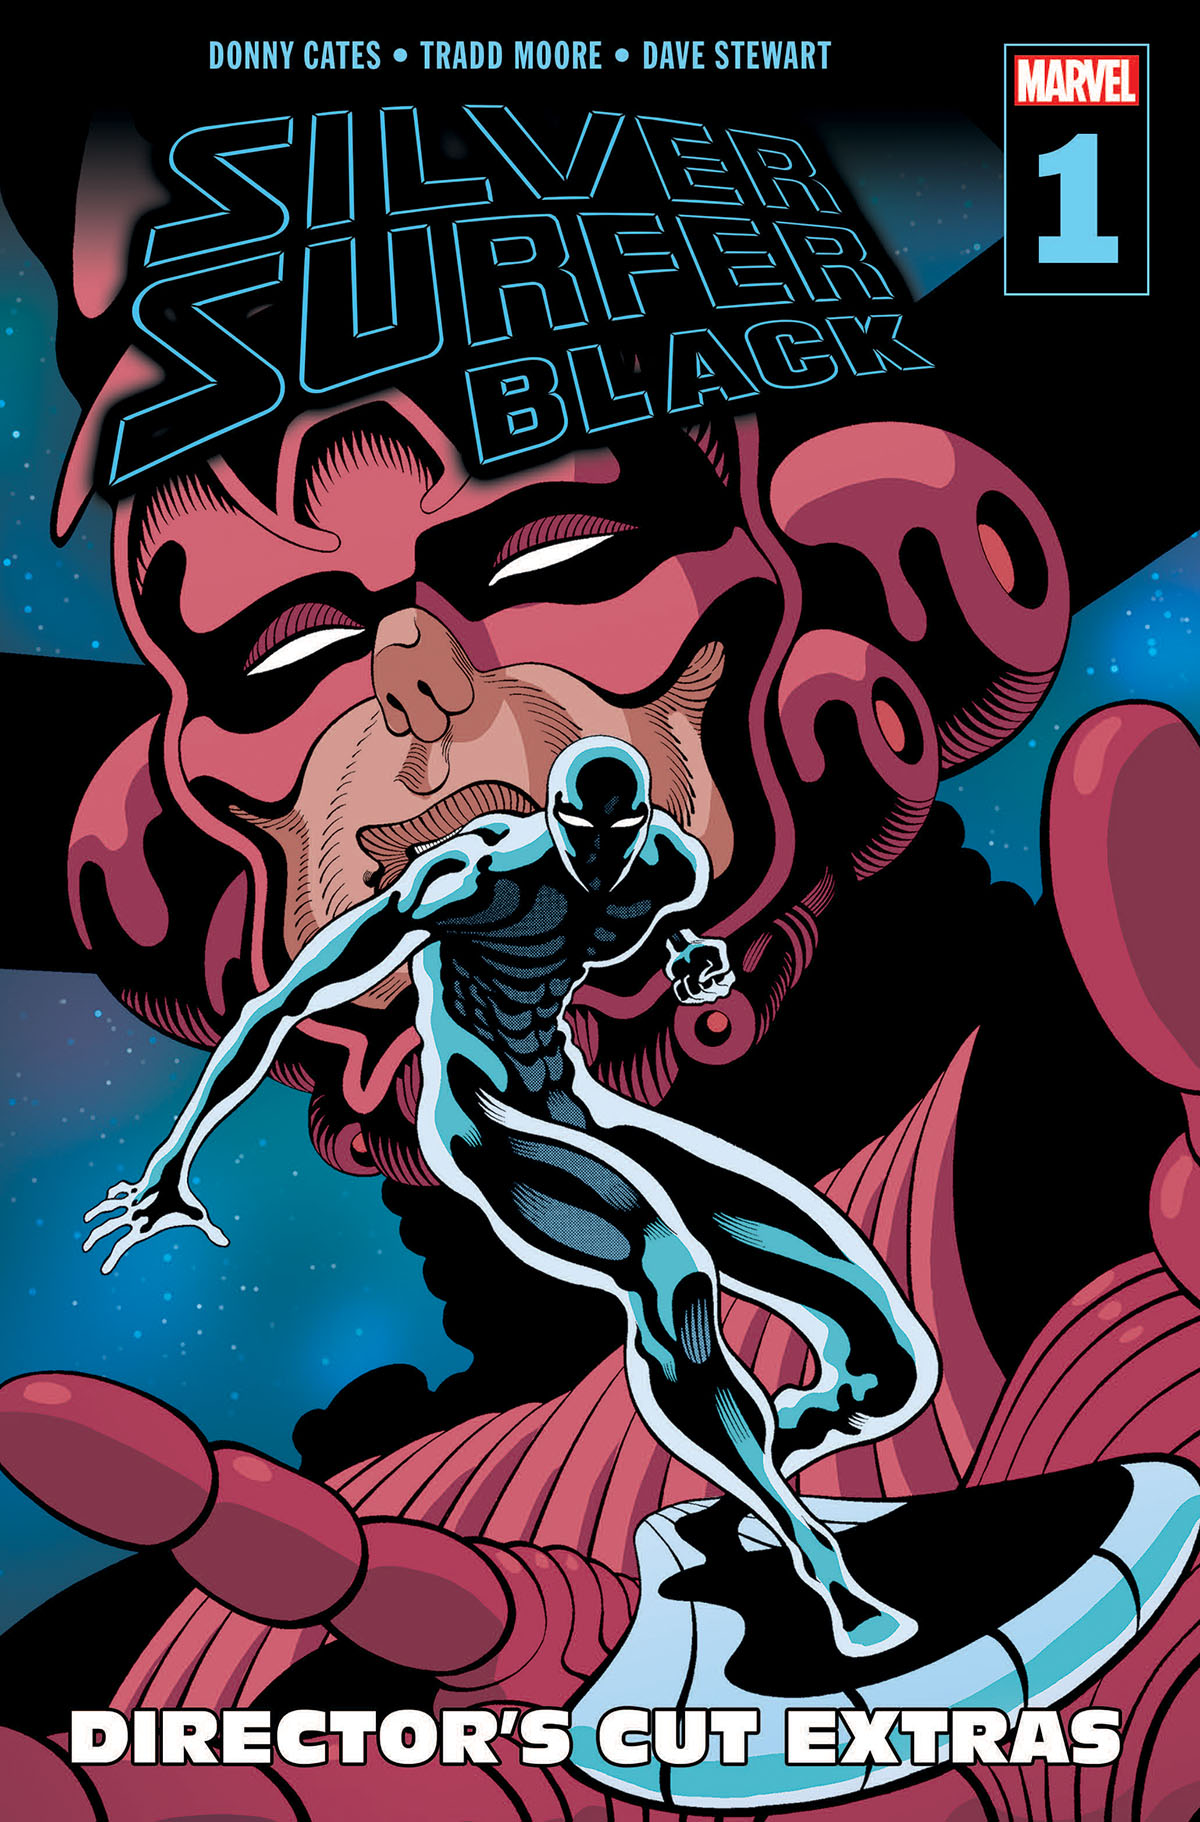 Silver Surfer Black_Director's Cut Cover.jpeg